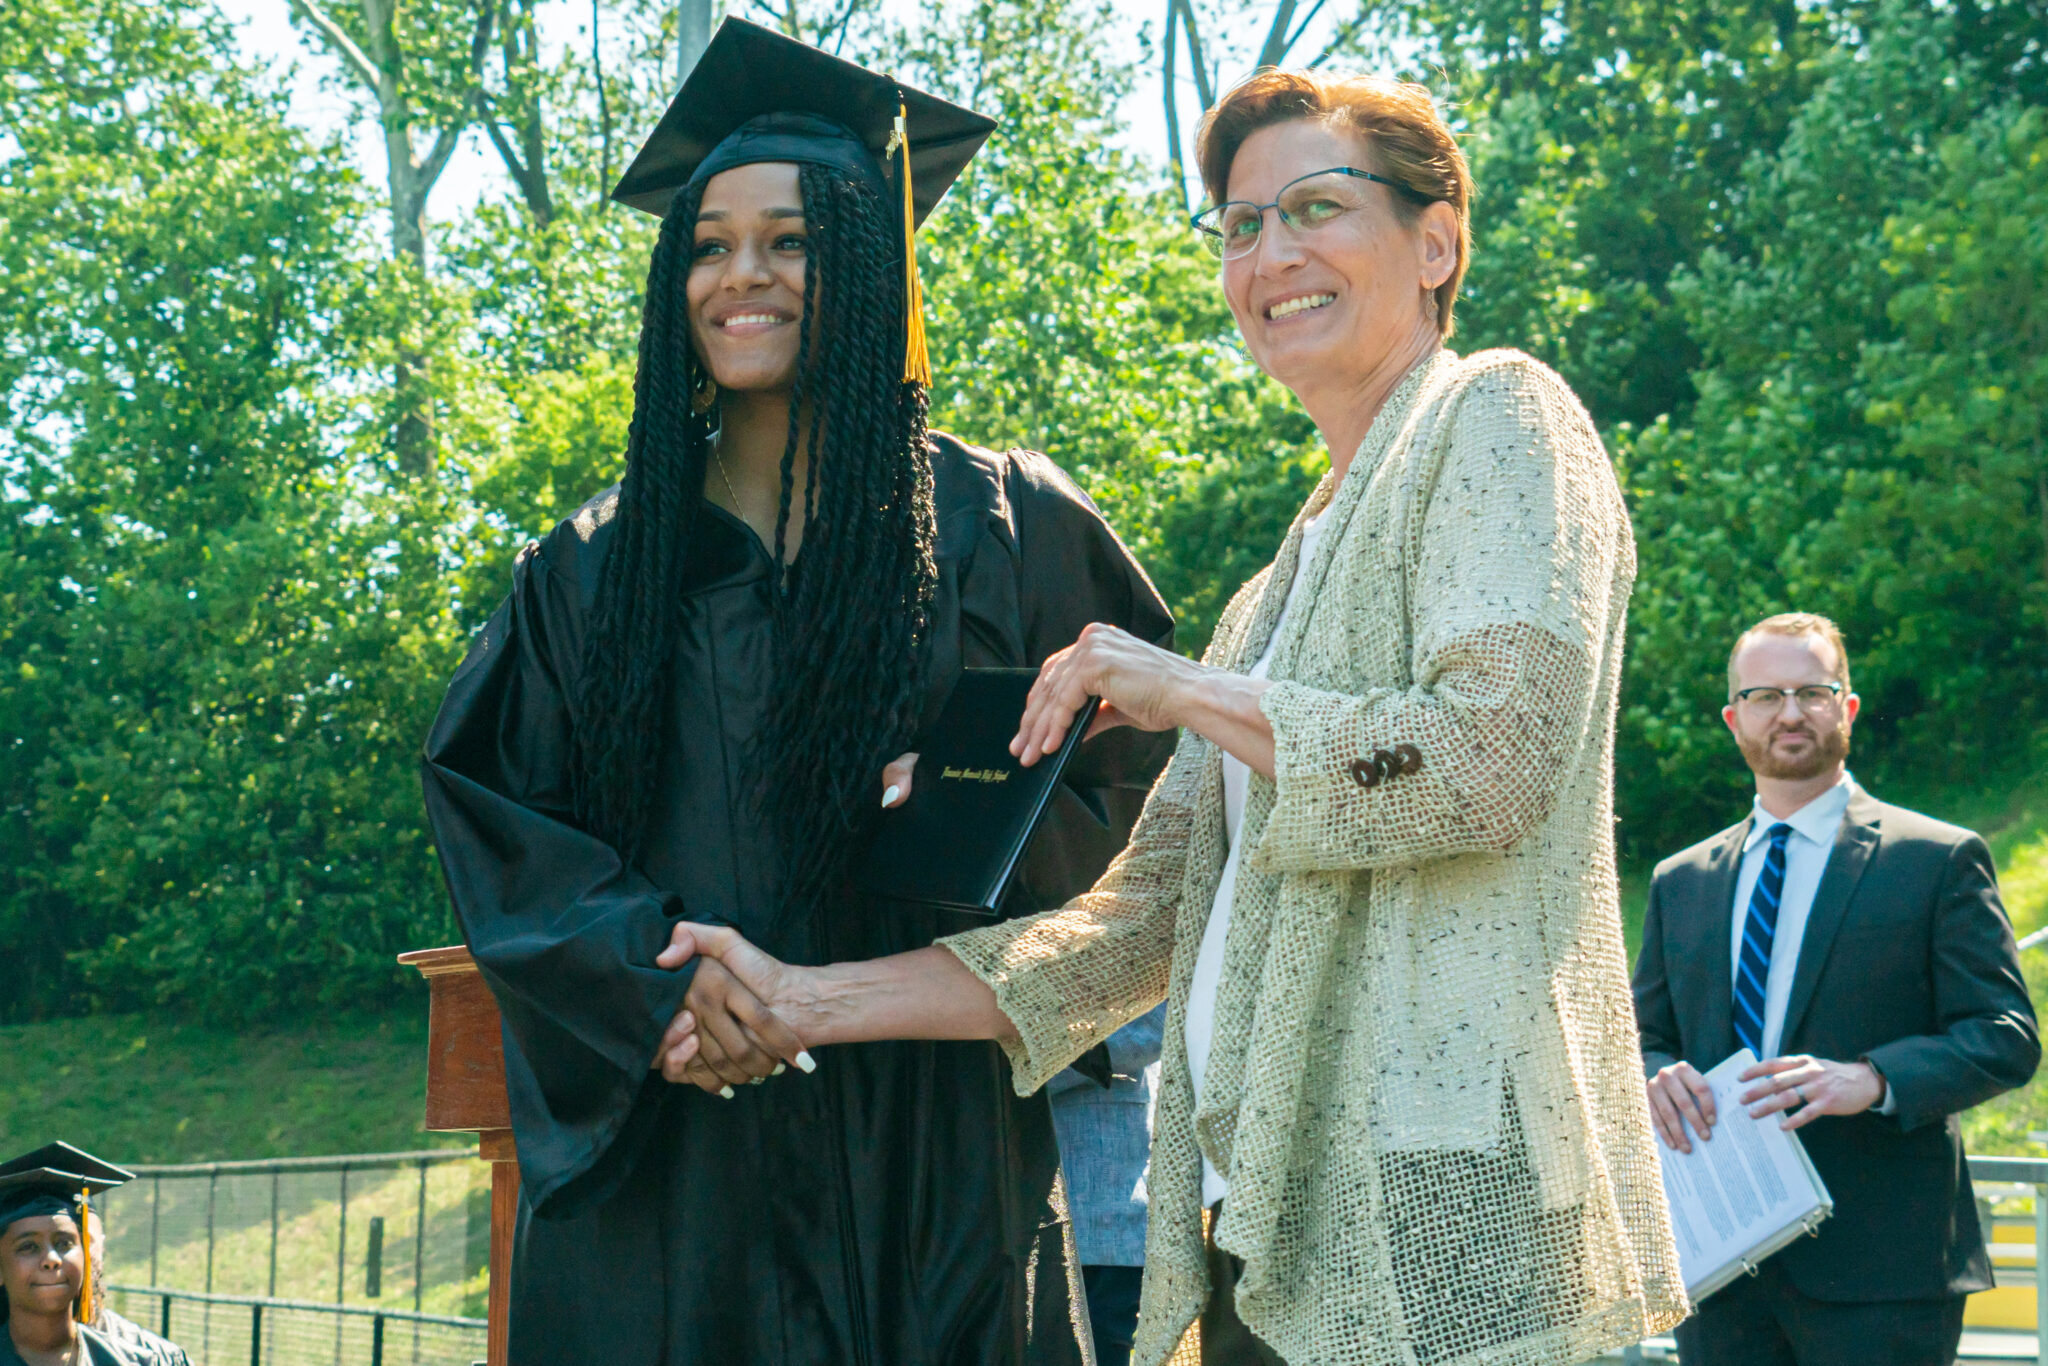 Superintendent gives diploma and shakes hand of student graduate